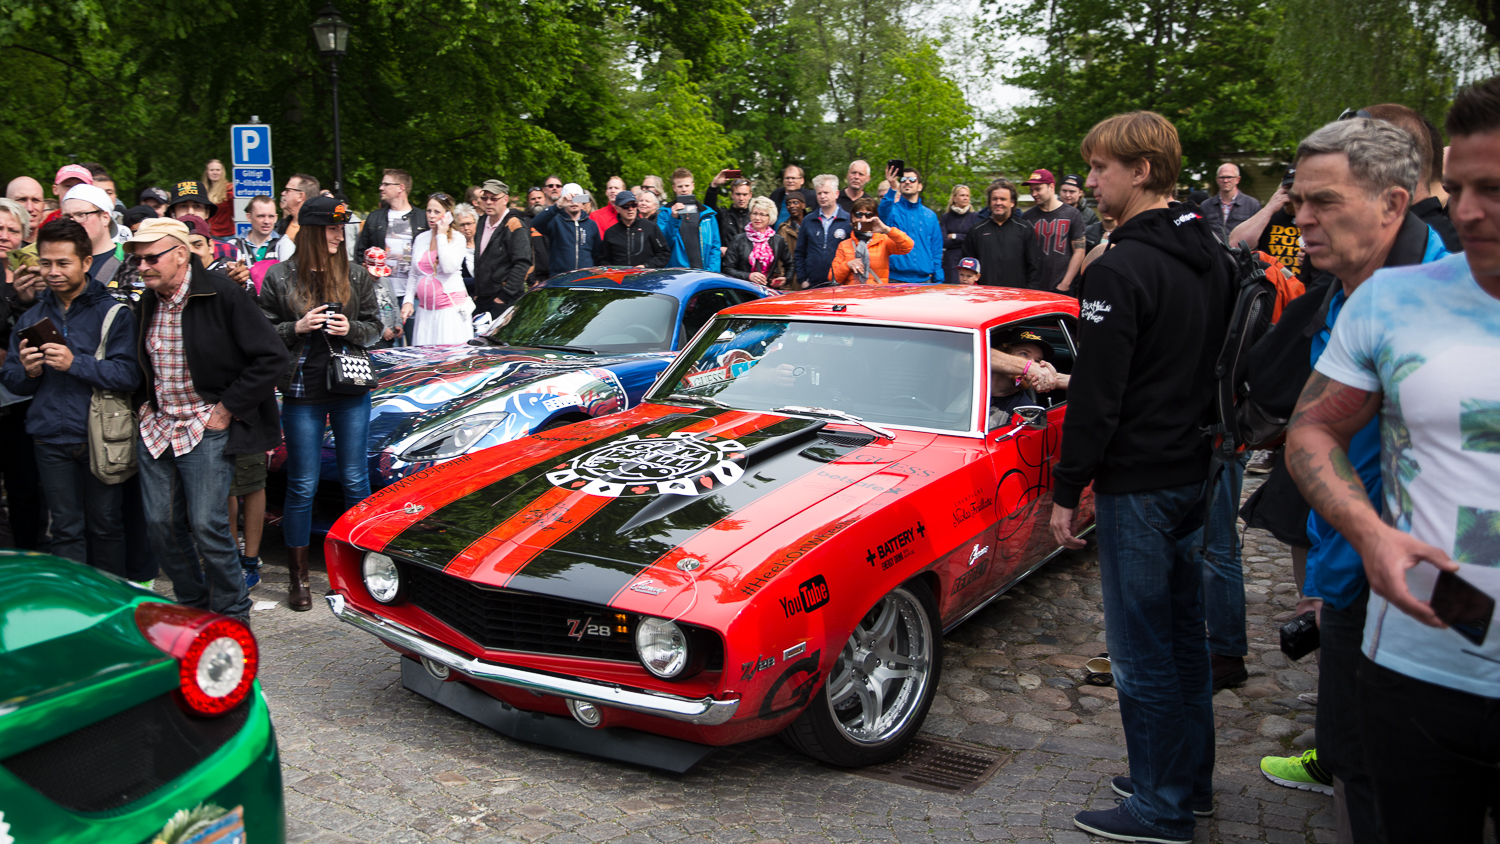 SMoores_15-05-24_Gumball 3000 Day 1_0915-Edit.jpg